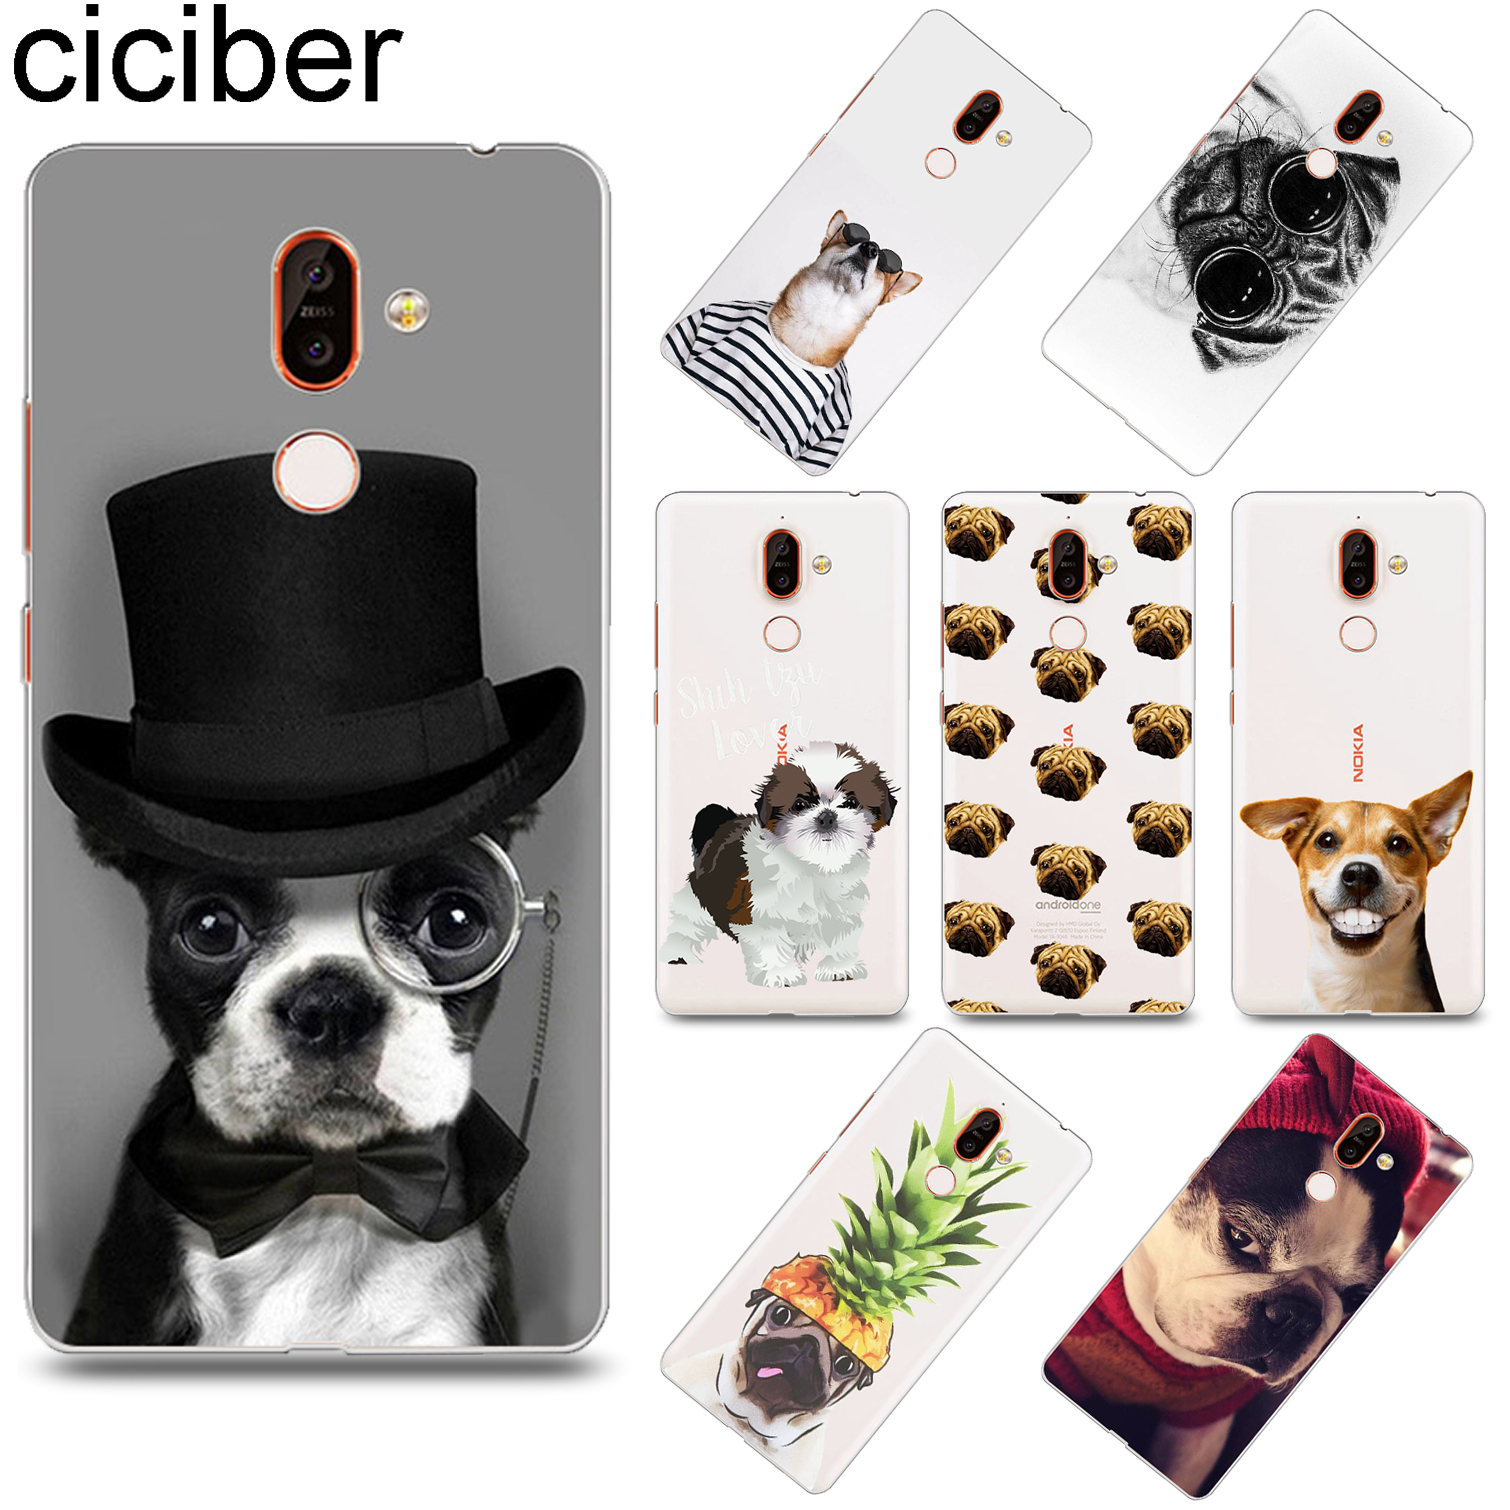 ciciber Cute Animal <font><b>Dog</b></font> For <font><b>Nokia</b></font> X6 X7 X5 X3 Soft TPU Phone <font><b>Cases</b></font> For <font><b>Nokia</b></font> 9 8 8.1 7 7.1 6 6.1 5 5.1 <font><b>3</b></font> <font><b>3</b></font>.1 2 2.1 1 Plus Coque image